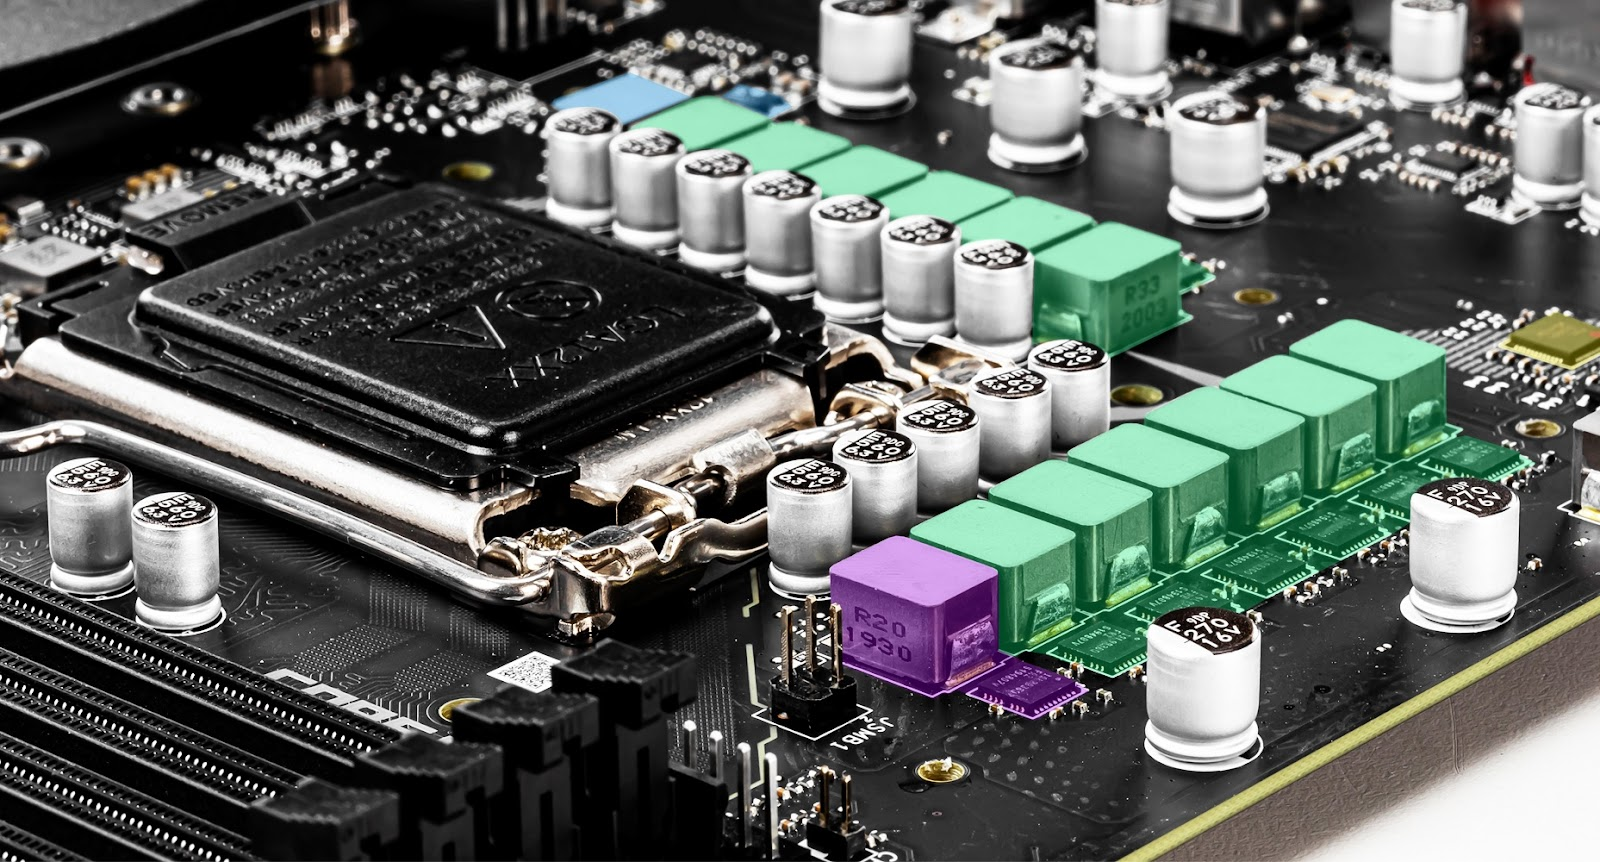 the ports of the motherboard